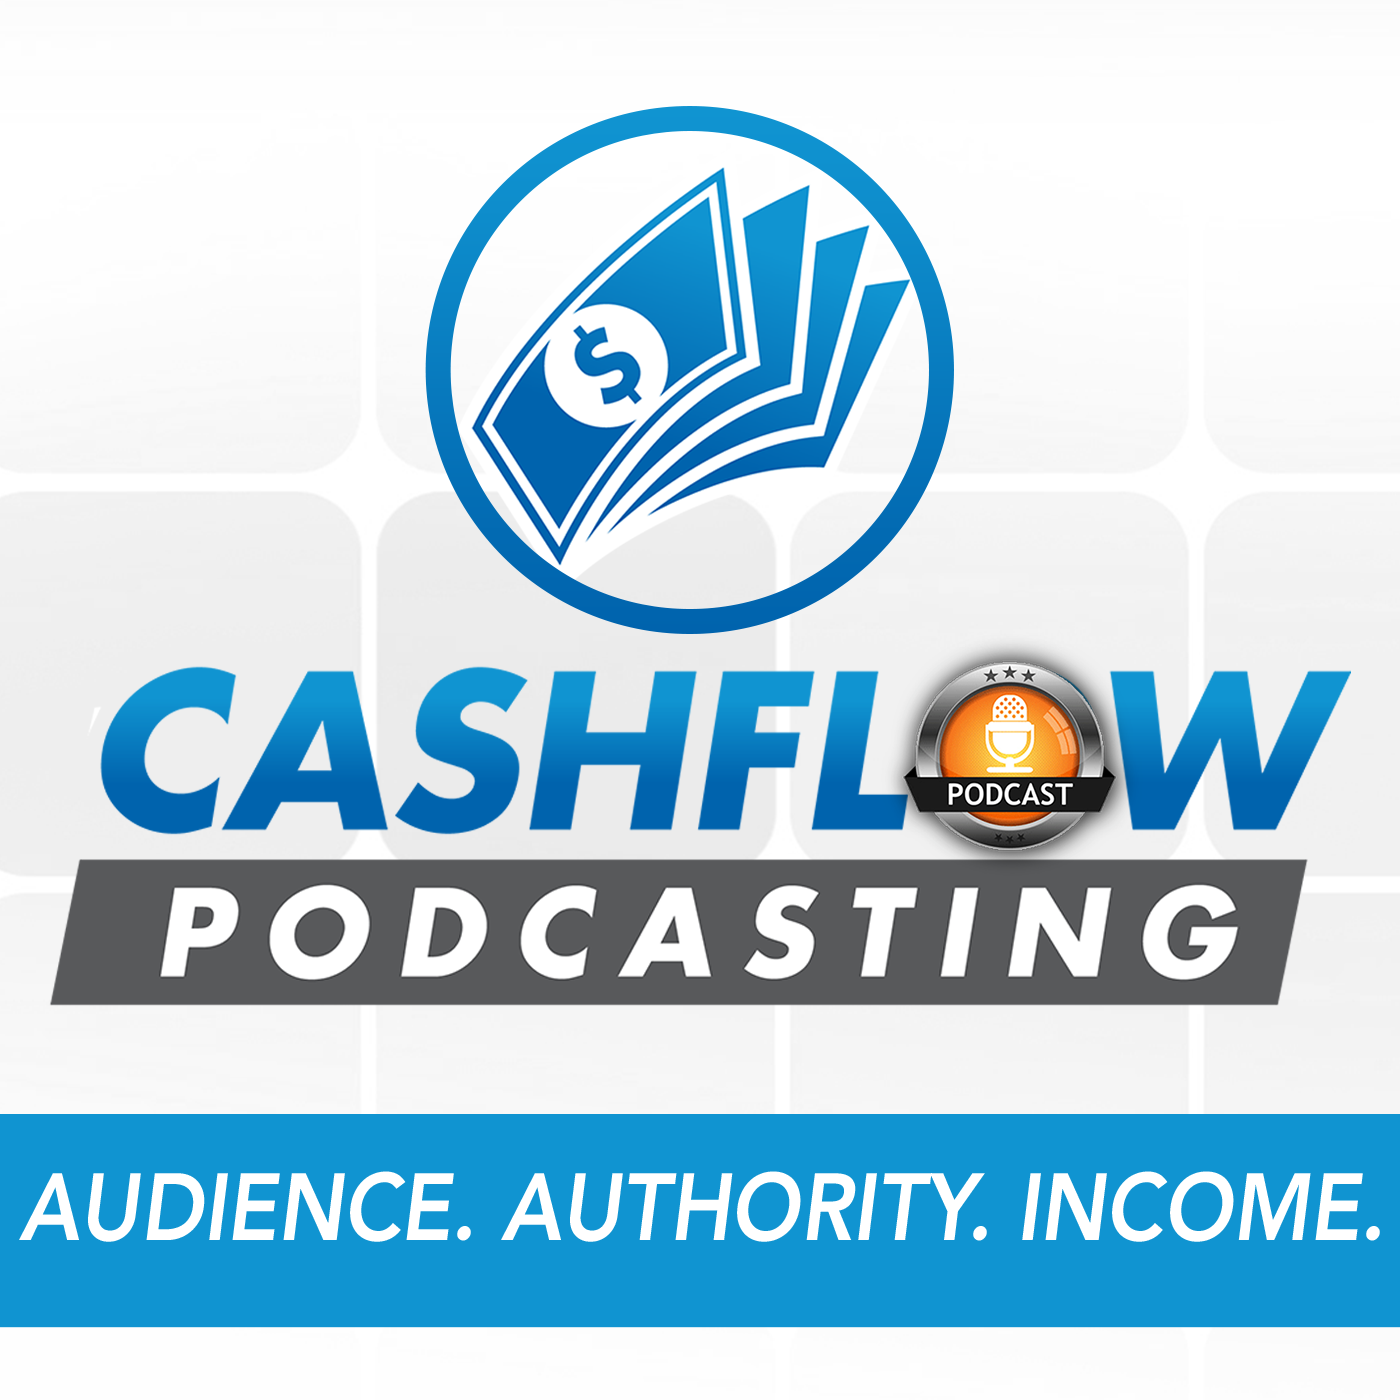 Cashflow Podcasting: Authority, Audience Growth and Sales through podcasting